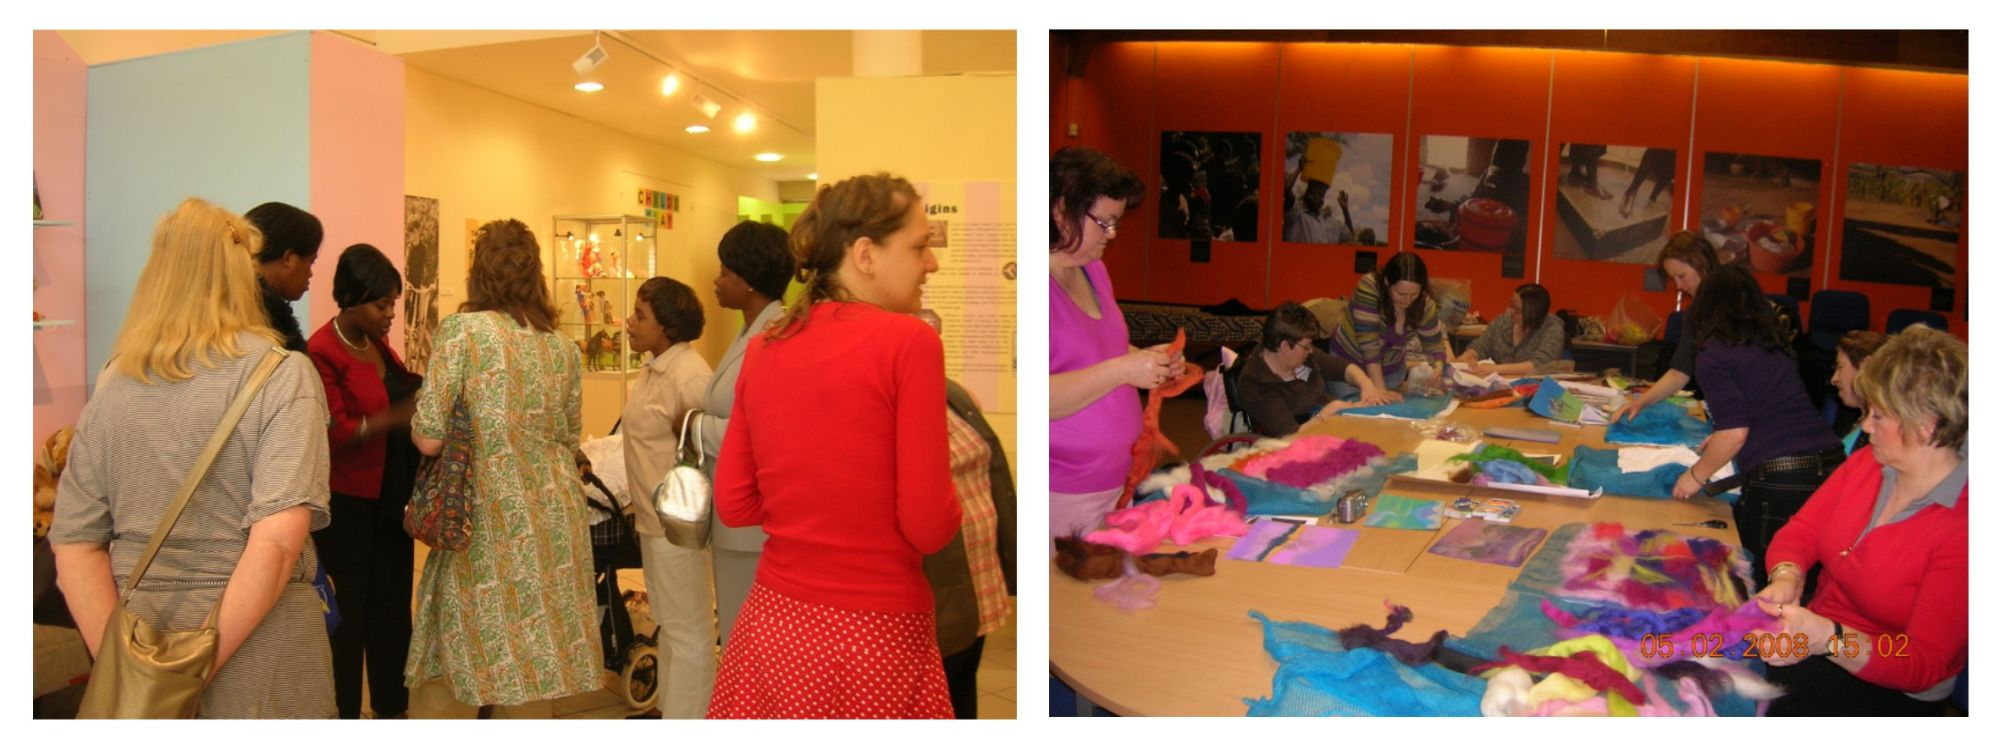 Two photos, one showing a group of black and white women exploring an exhibition, the other of a group of white women making felt collages